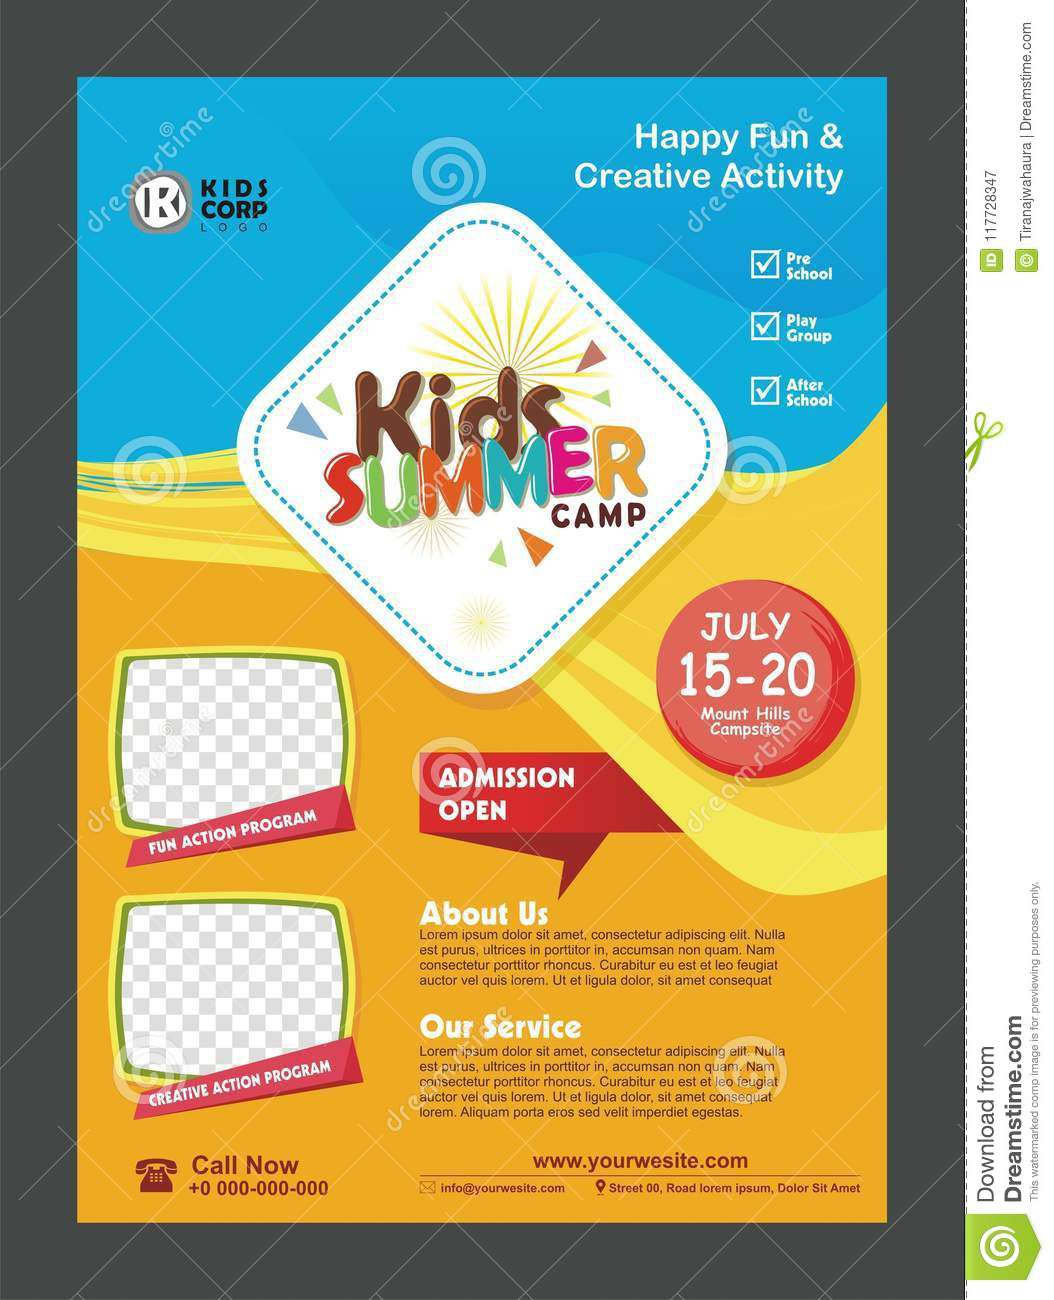 008 Fascinating Free After School Program Flyer Template Picture Full